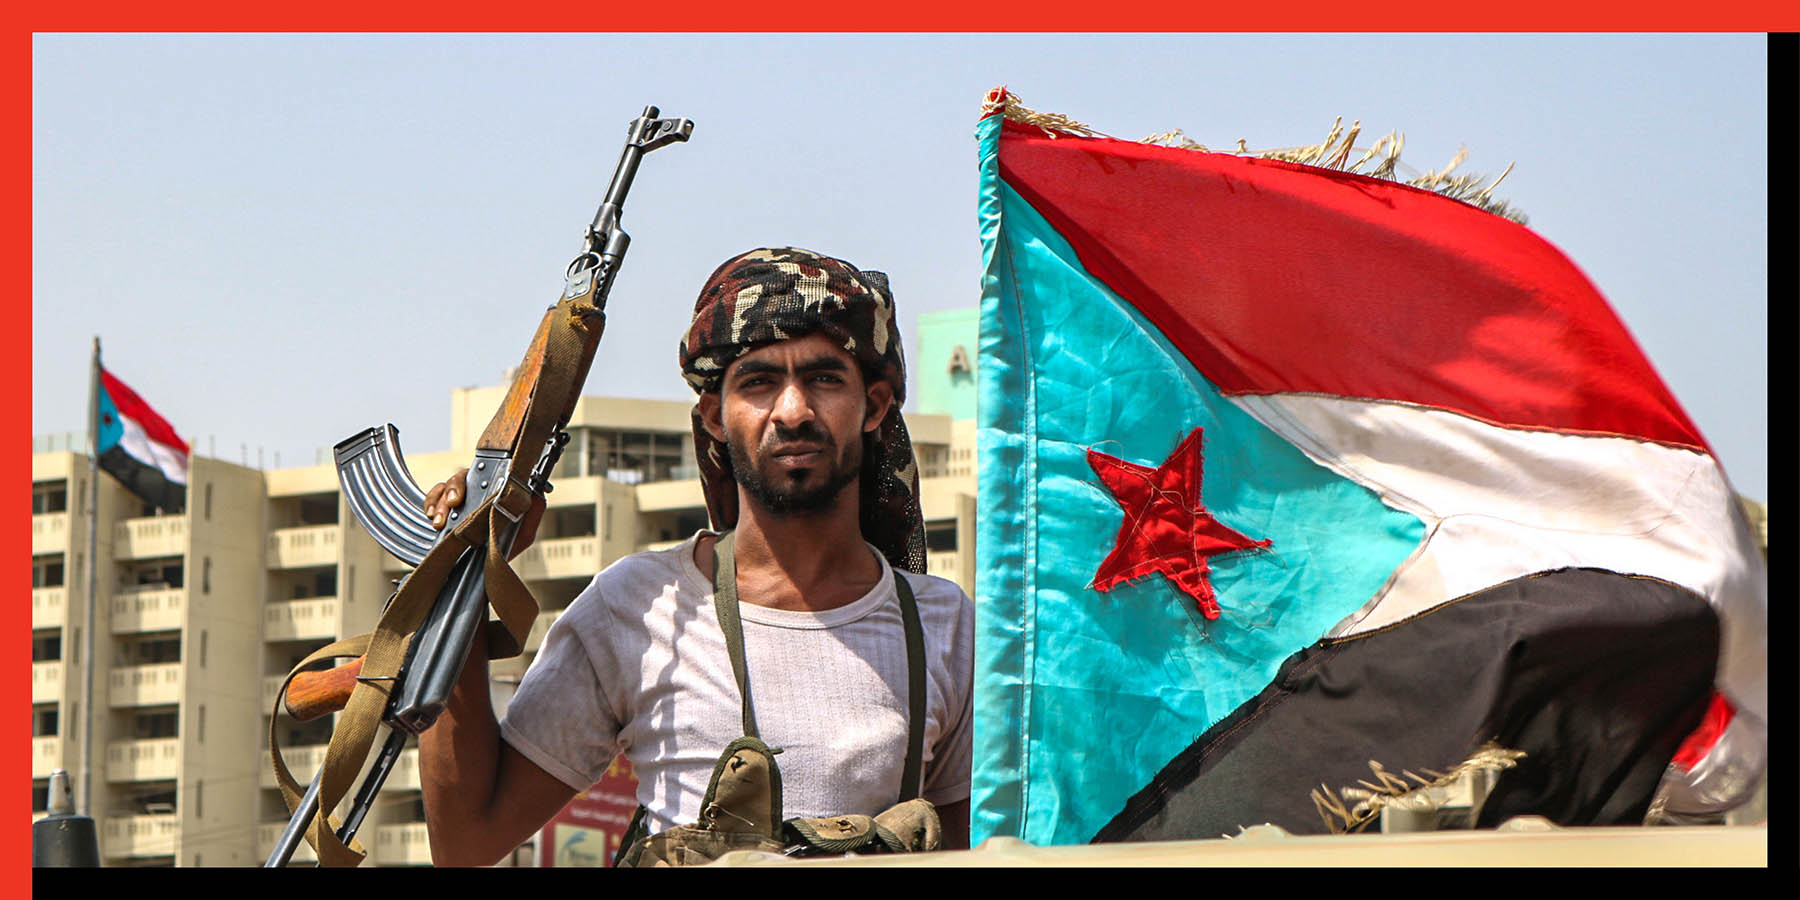 A fighter poses with a Kalashnikov assault rifle and the southern separatist flag (the old flag of South Yemen) in the Khor Maksar district of Aden on Aug. 29.